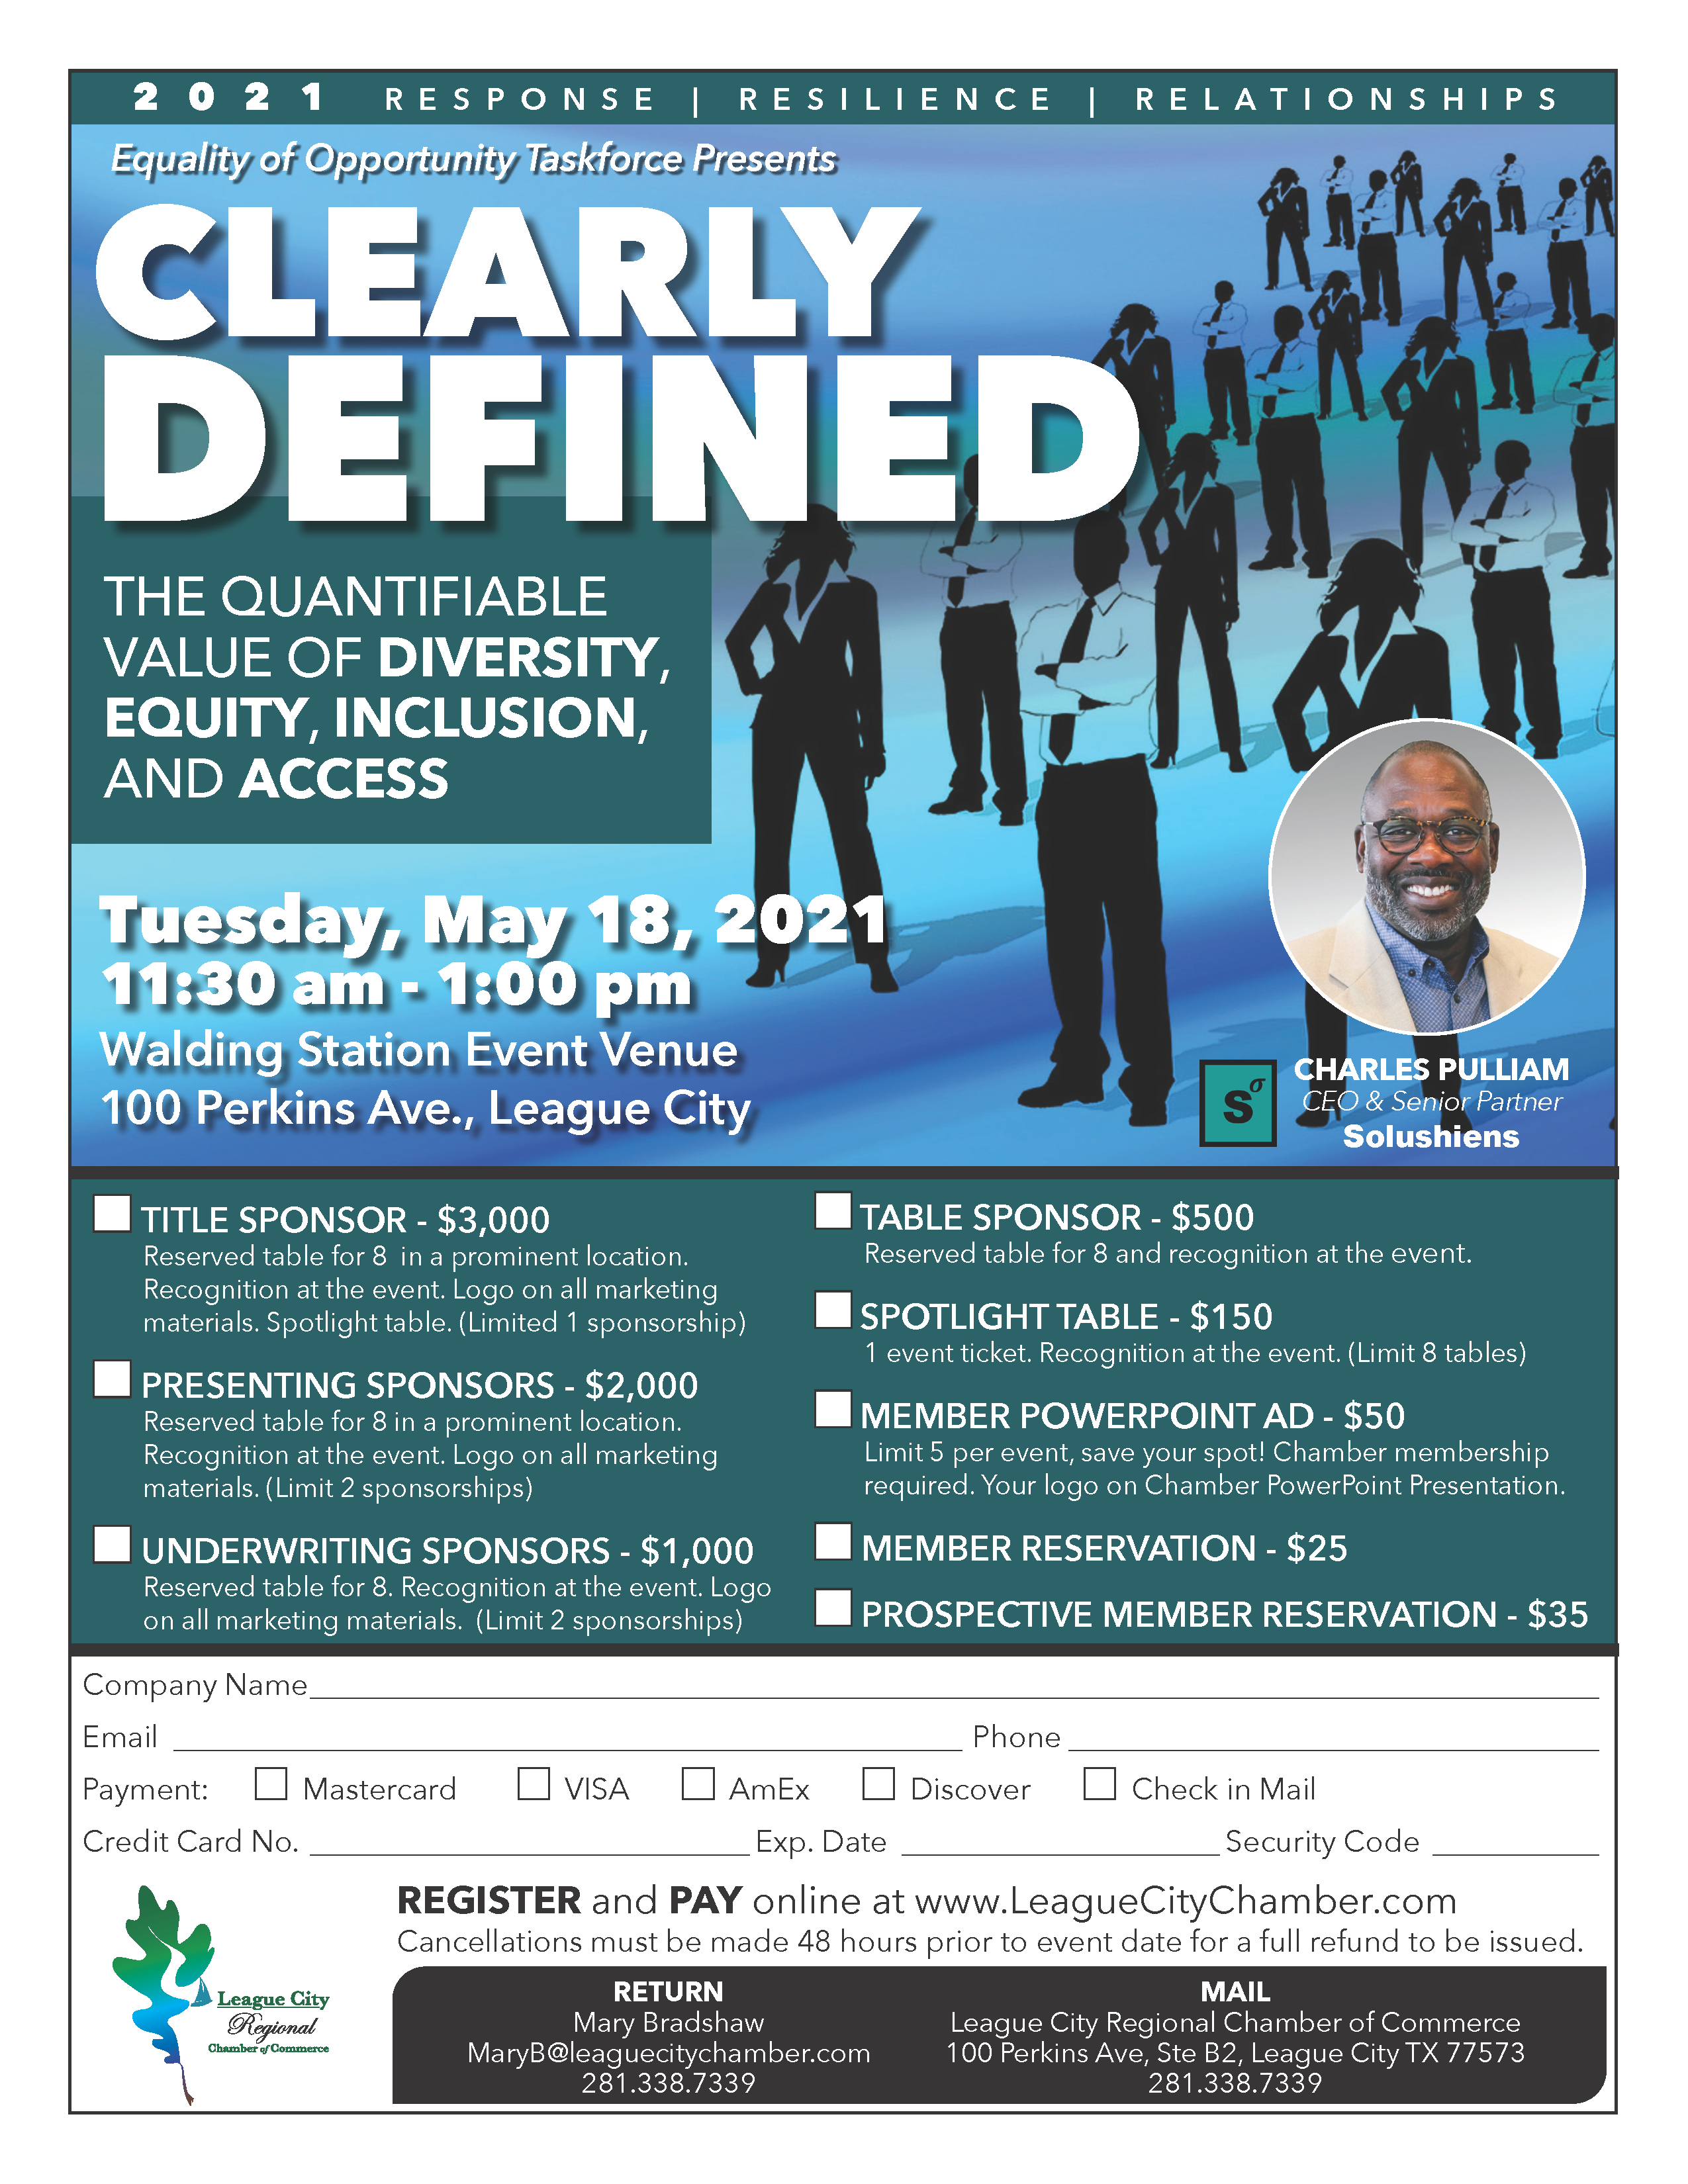 Image for PRESS RELEASE: League City Regional Chamber of Commerce to host Clearly Defined Luncheon